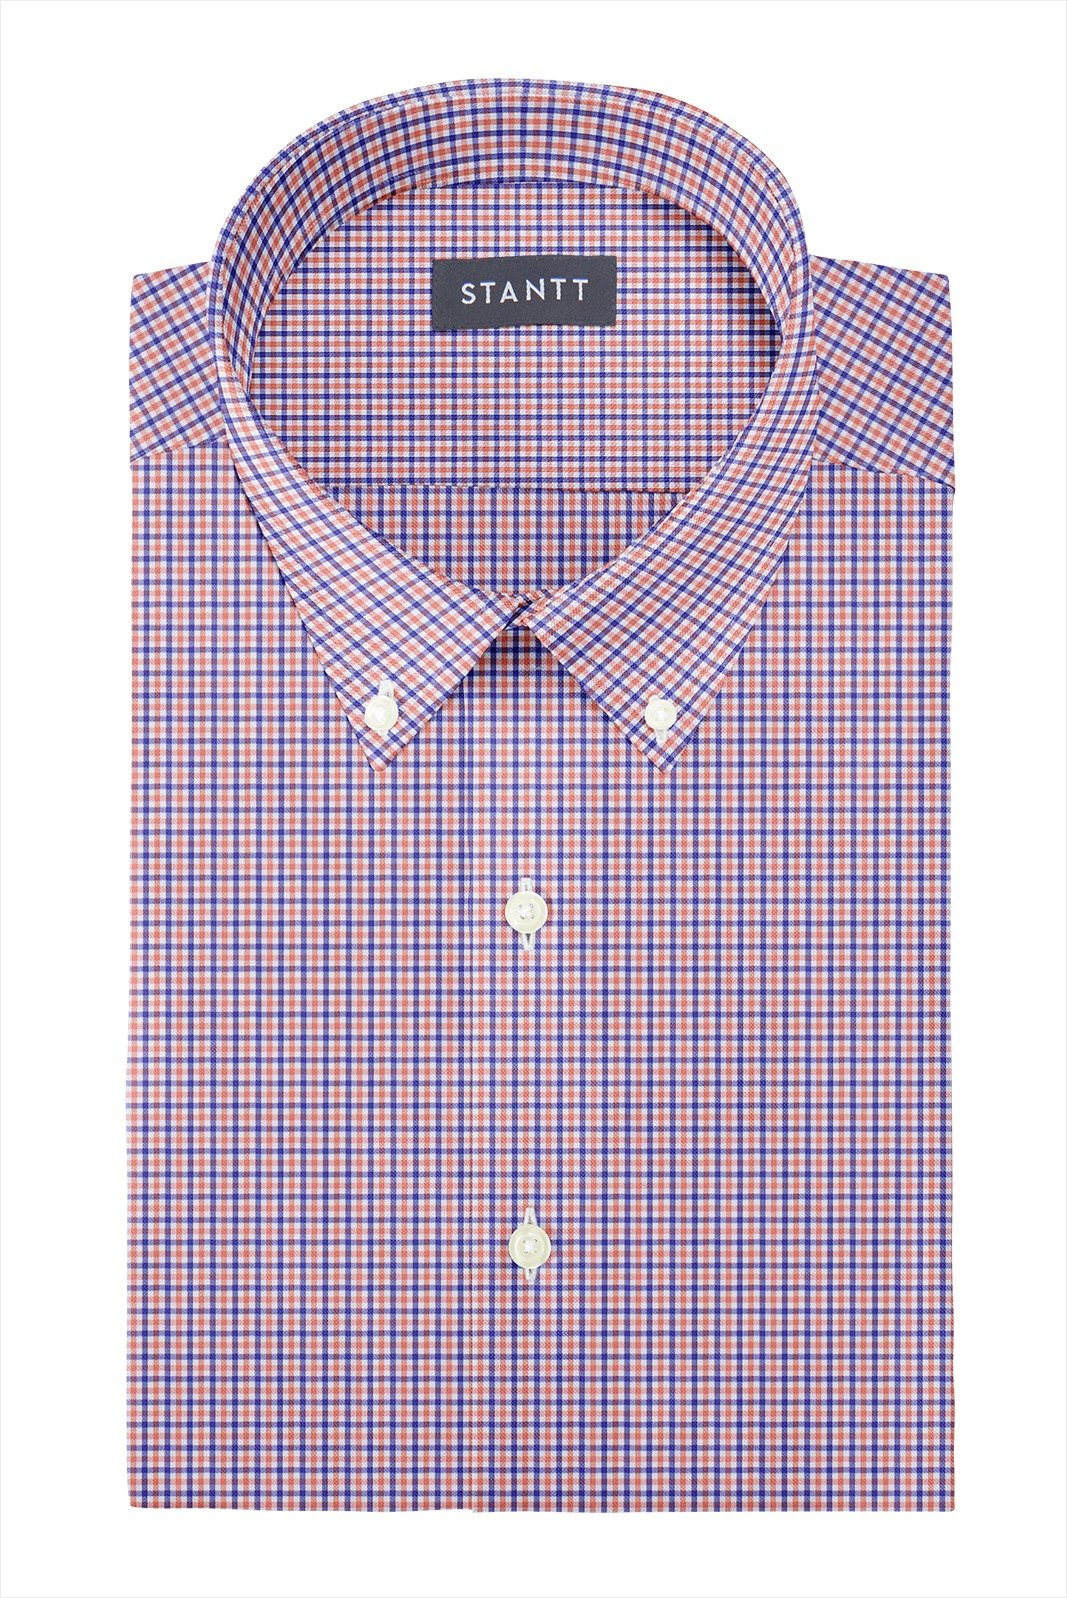 Orange and Blue Mini Tattersall: Button-Down Collar, Barrel Cuff